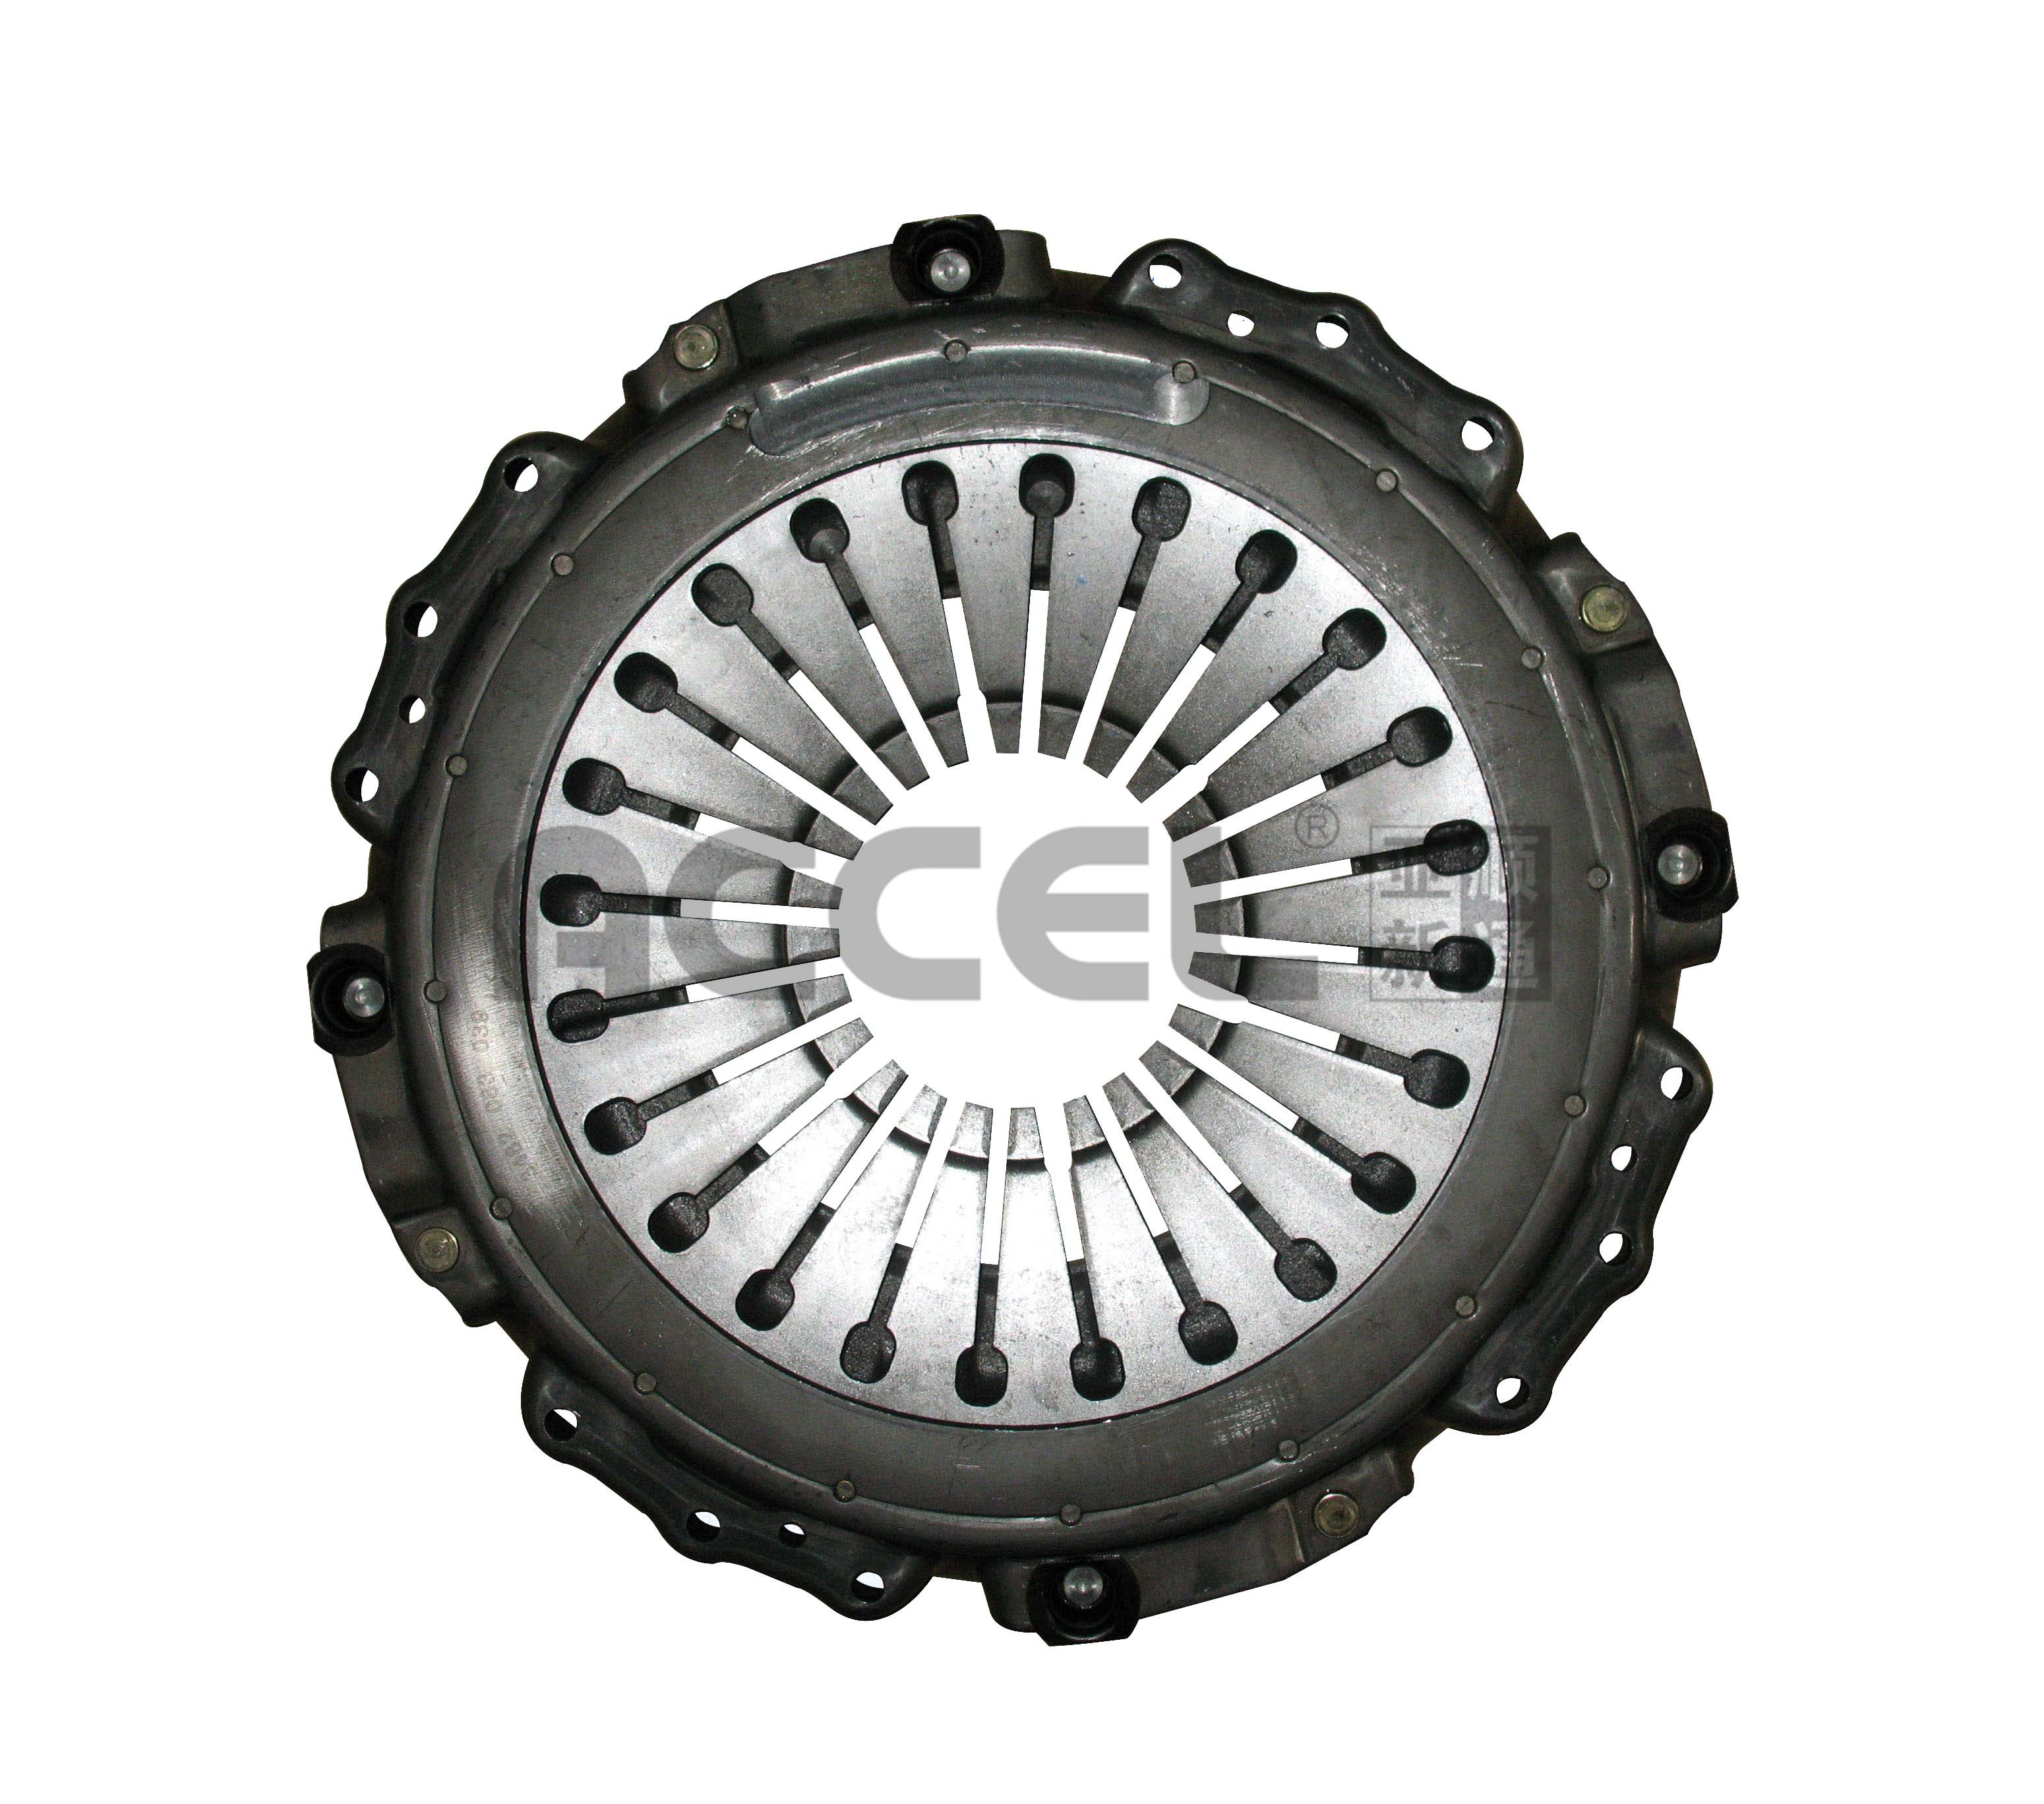 Clutch Cover/OE:1113870/430*235*450/CSN-001/Scania/LY237/3482 083 039